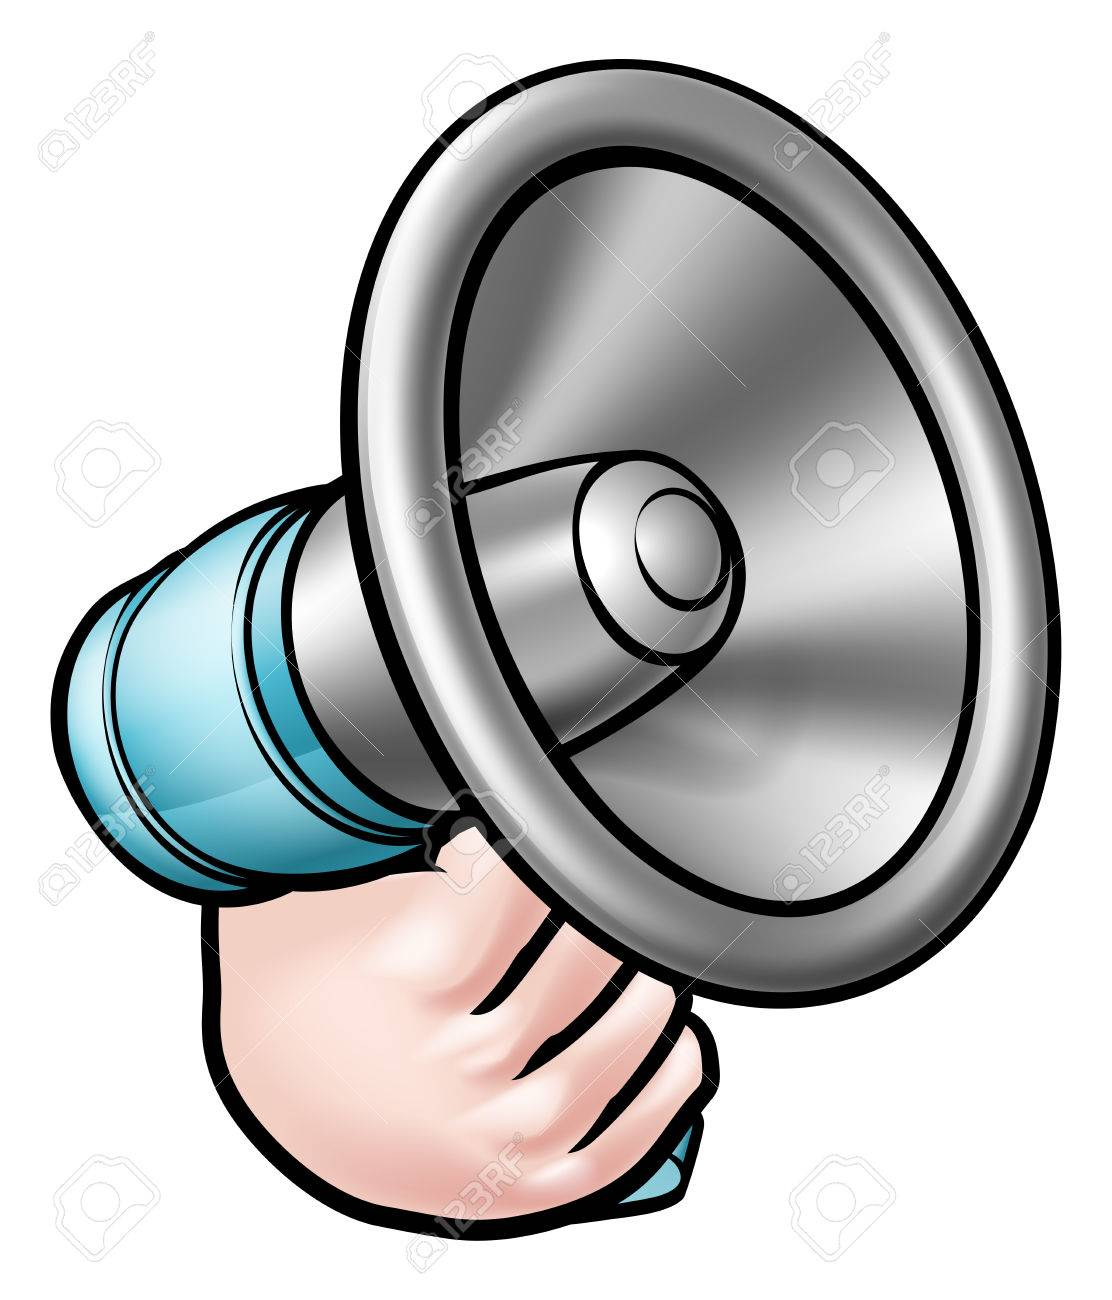 1112x1300 A Cartoon Hand Holding A Megaphone Or Bullhorn Royalty Free